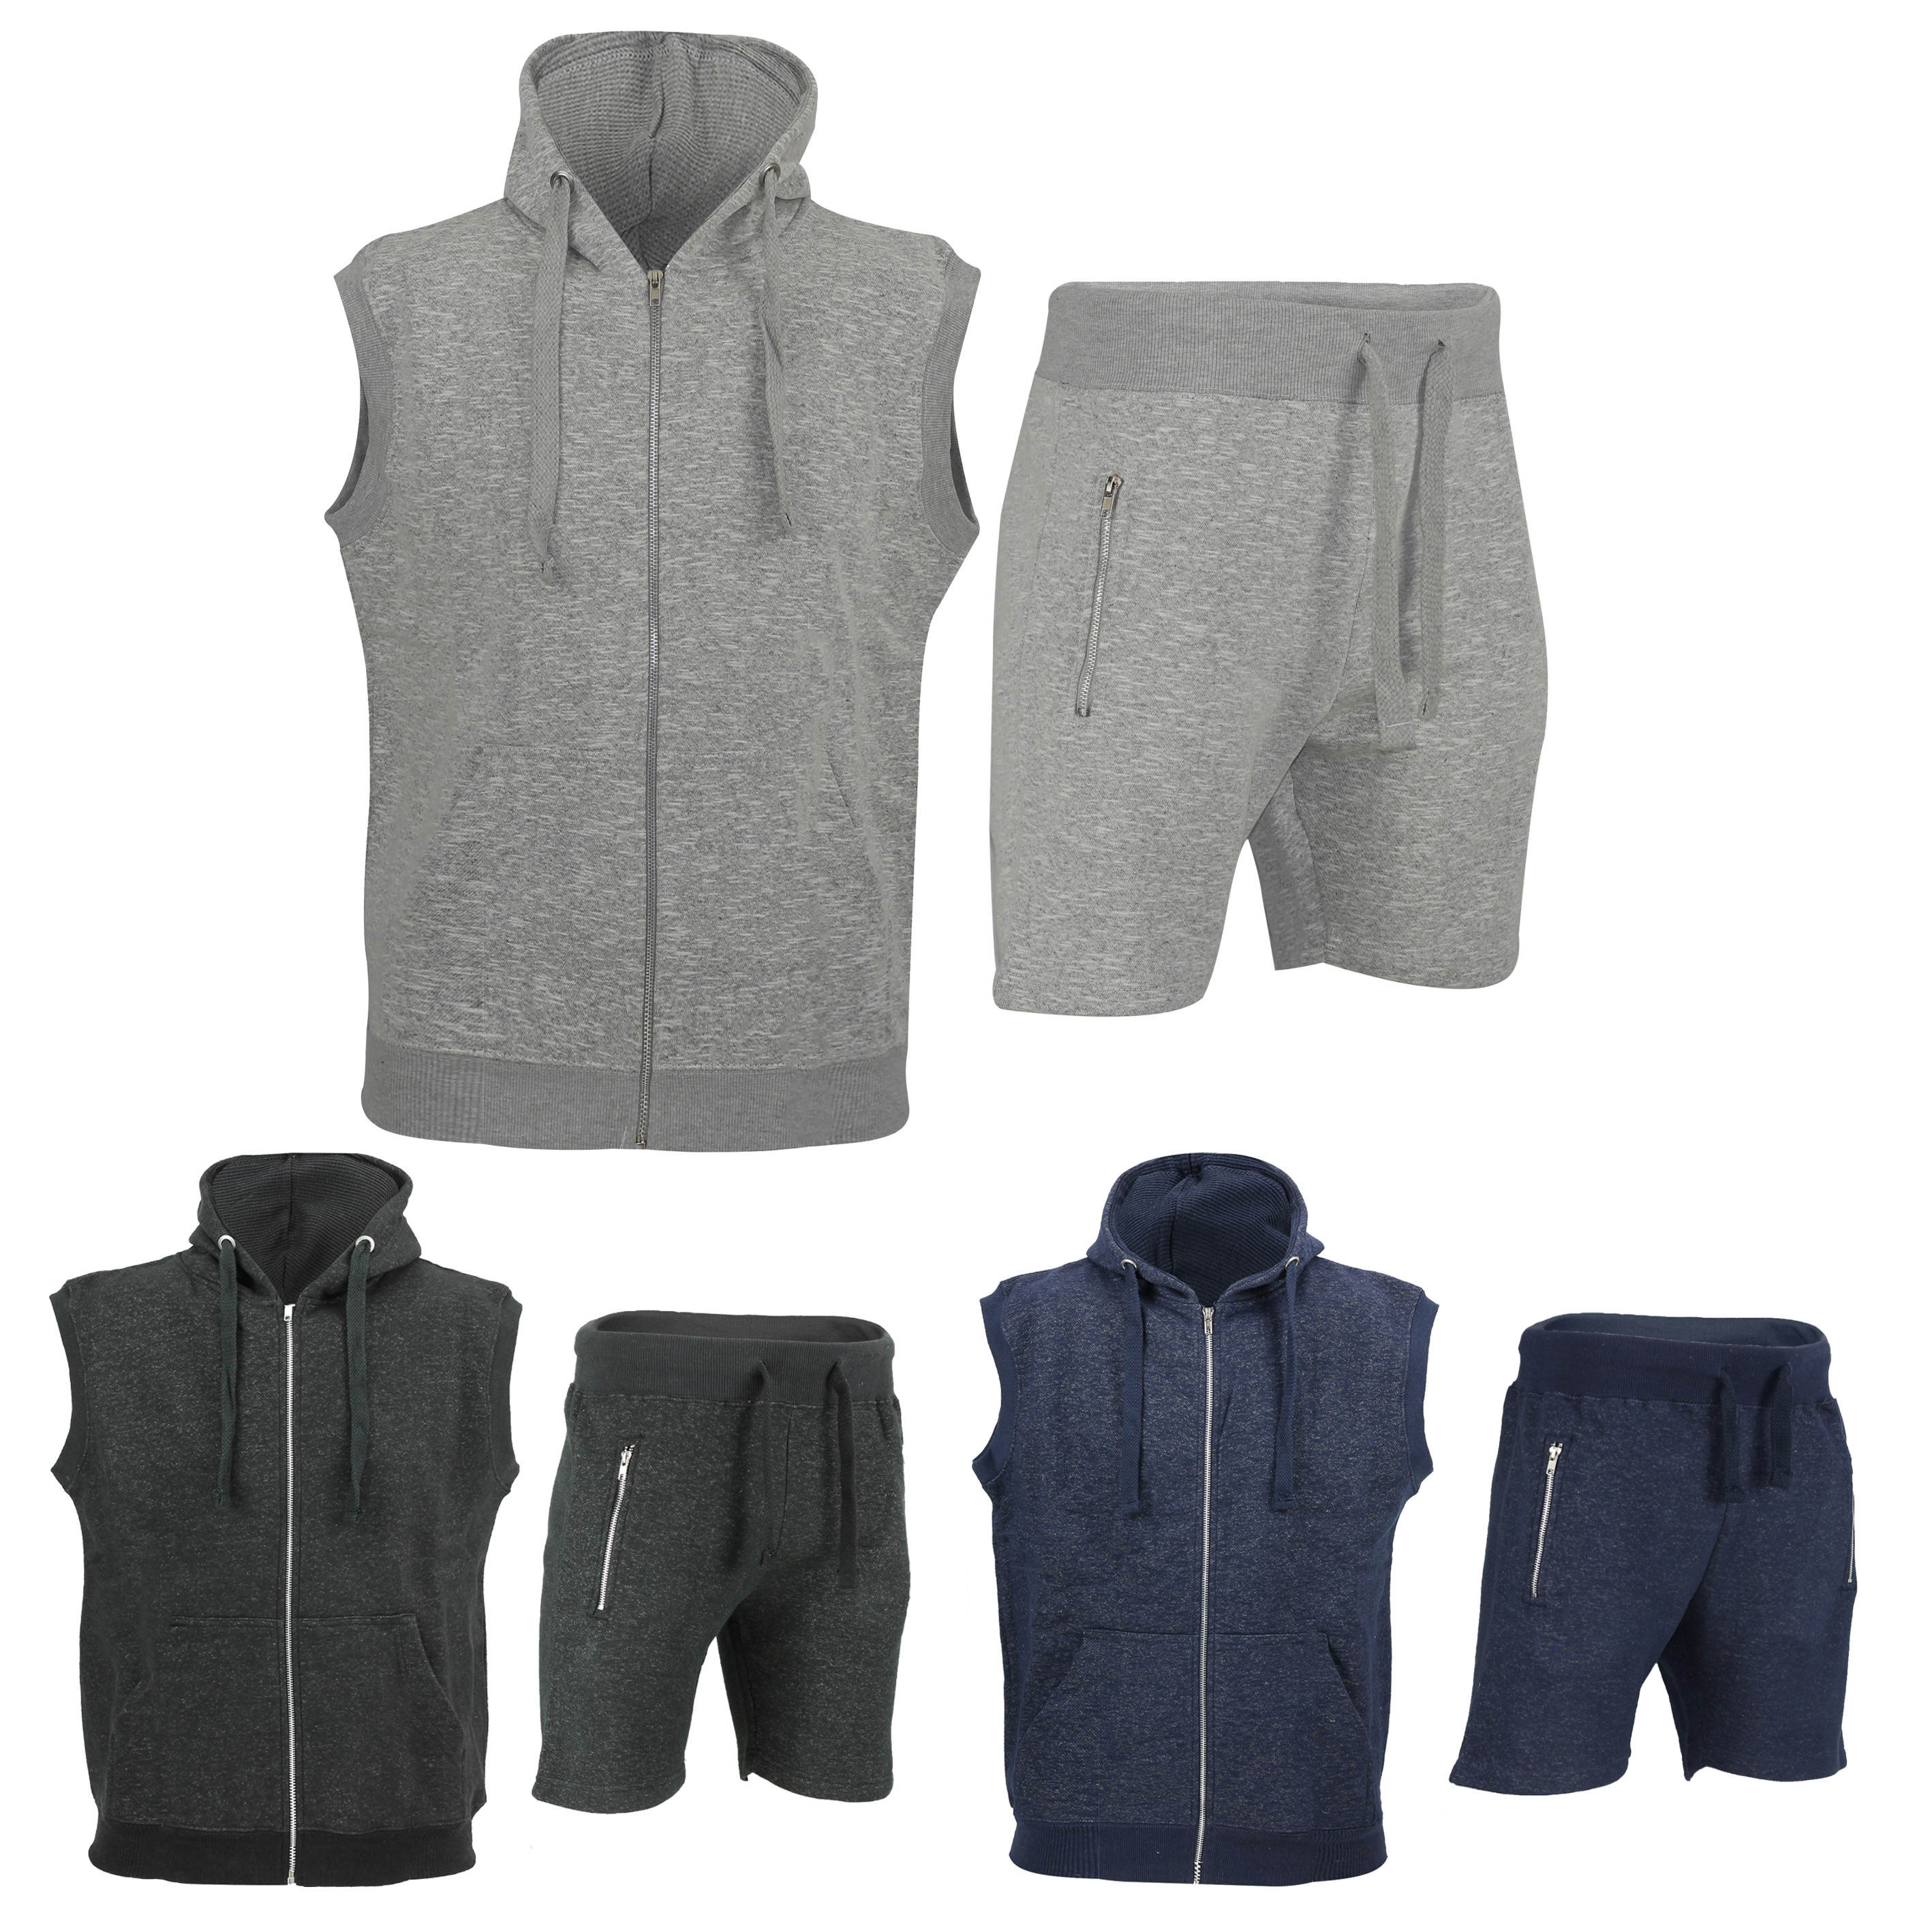 Details about Mens Tracksuit Set Sleeveless Hoodie Top   Shorts Jogging  Bottoms Summer Casual 74ab1ec88